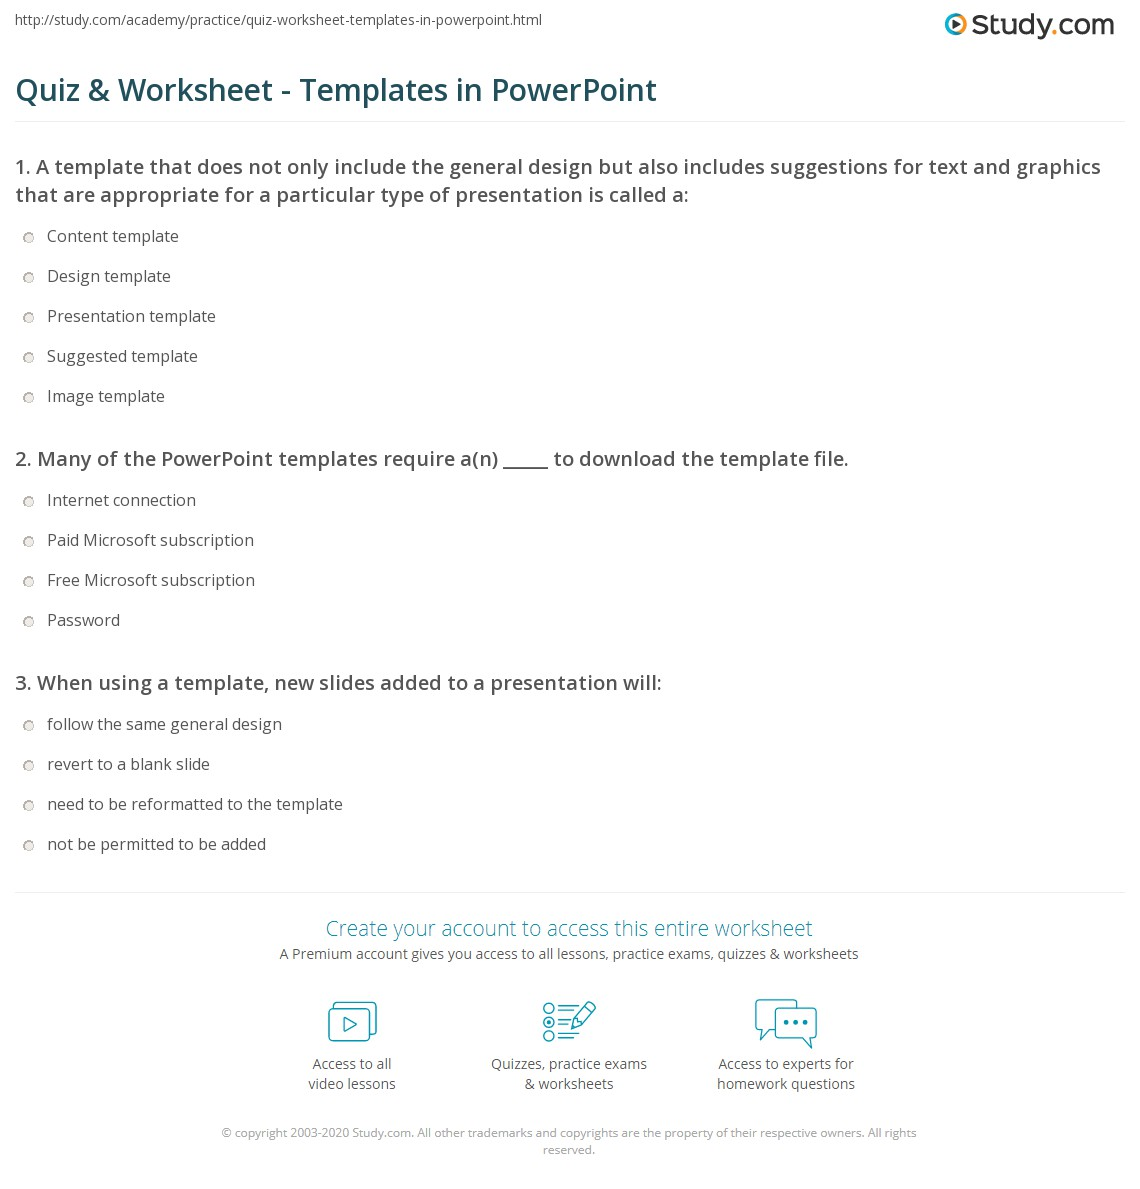 Quiz worksheet templates in powerpoint study many of the powerpoint templates require an to download the template file toneelgroepblik Gallery